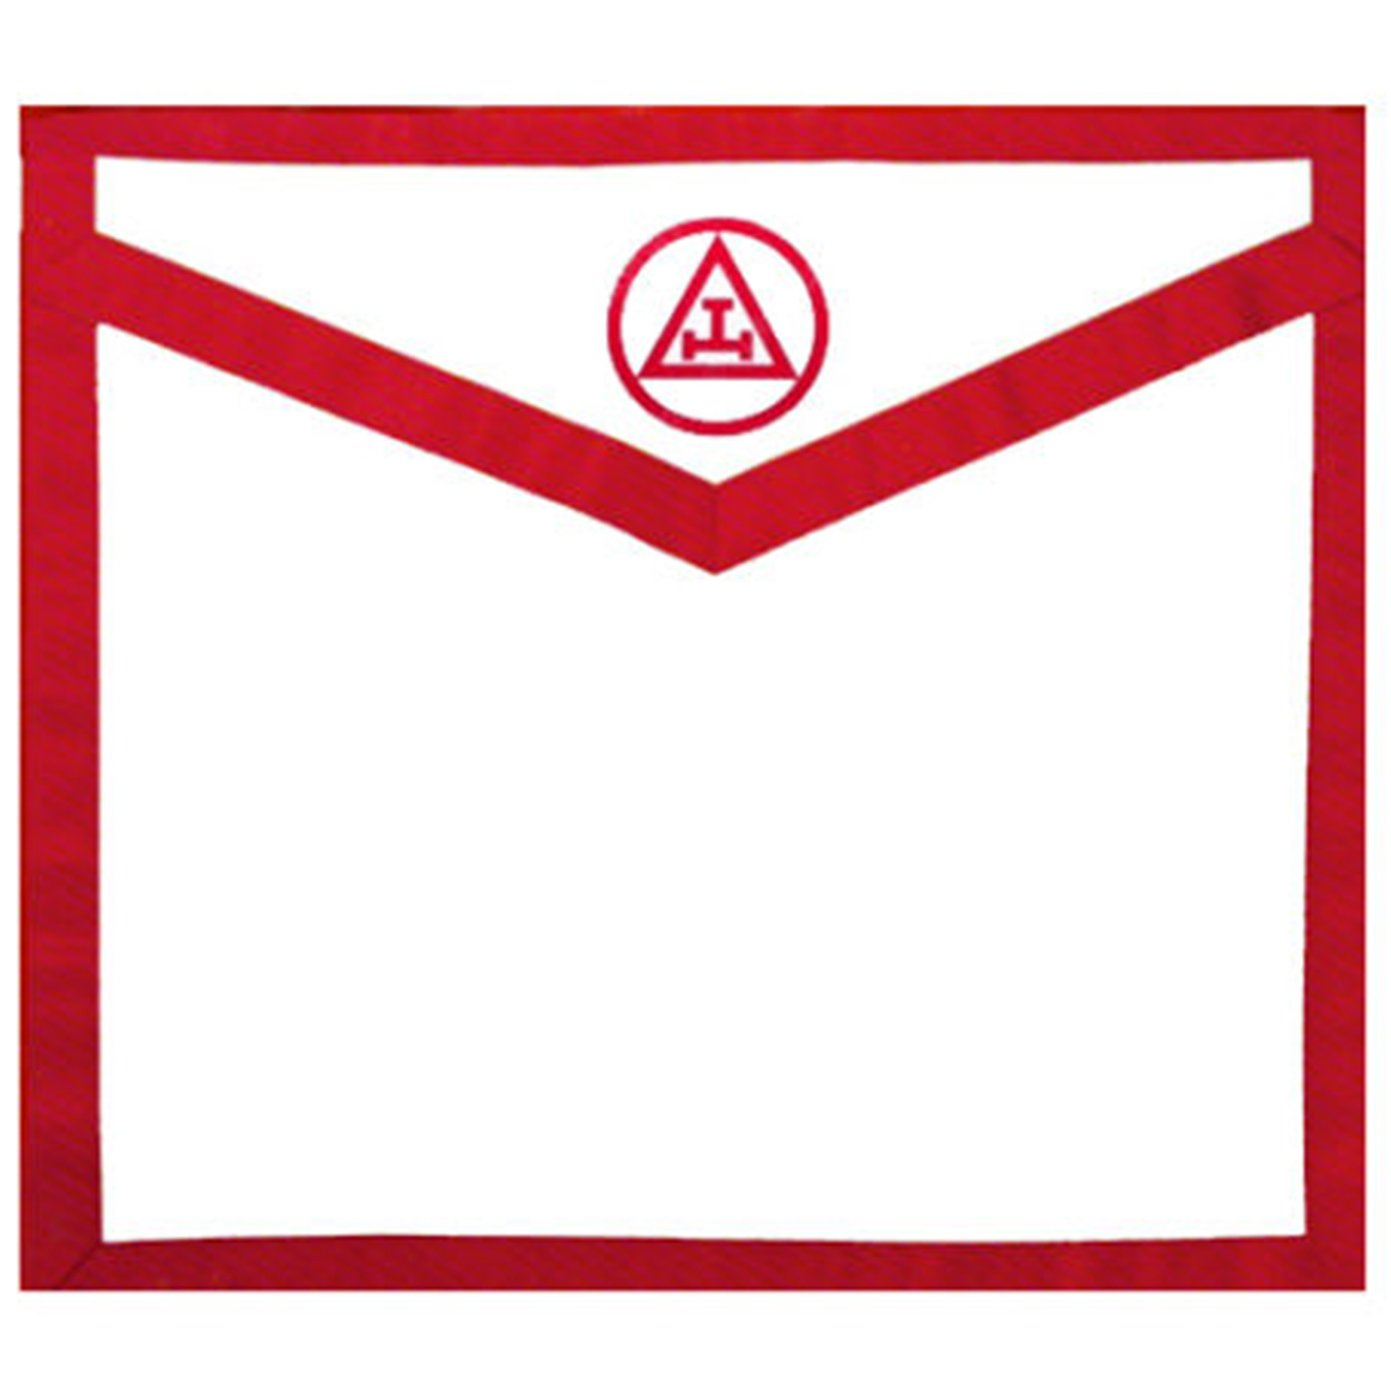 Masonic Apron Royal Arch. Red White Duck Cloth Apron - Triple Tau - Bricks Masons